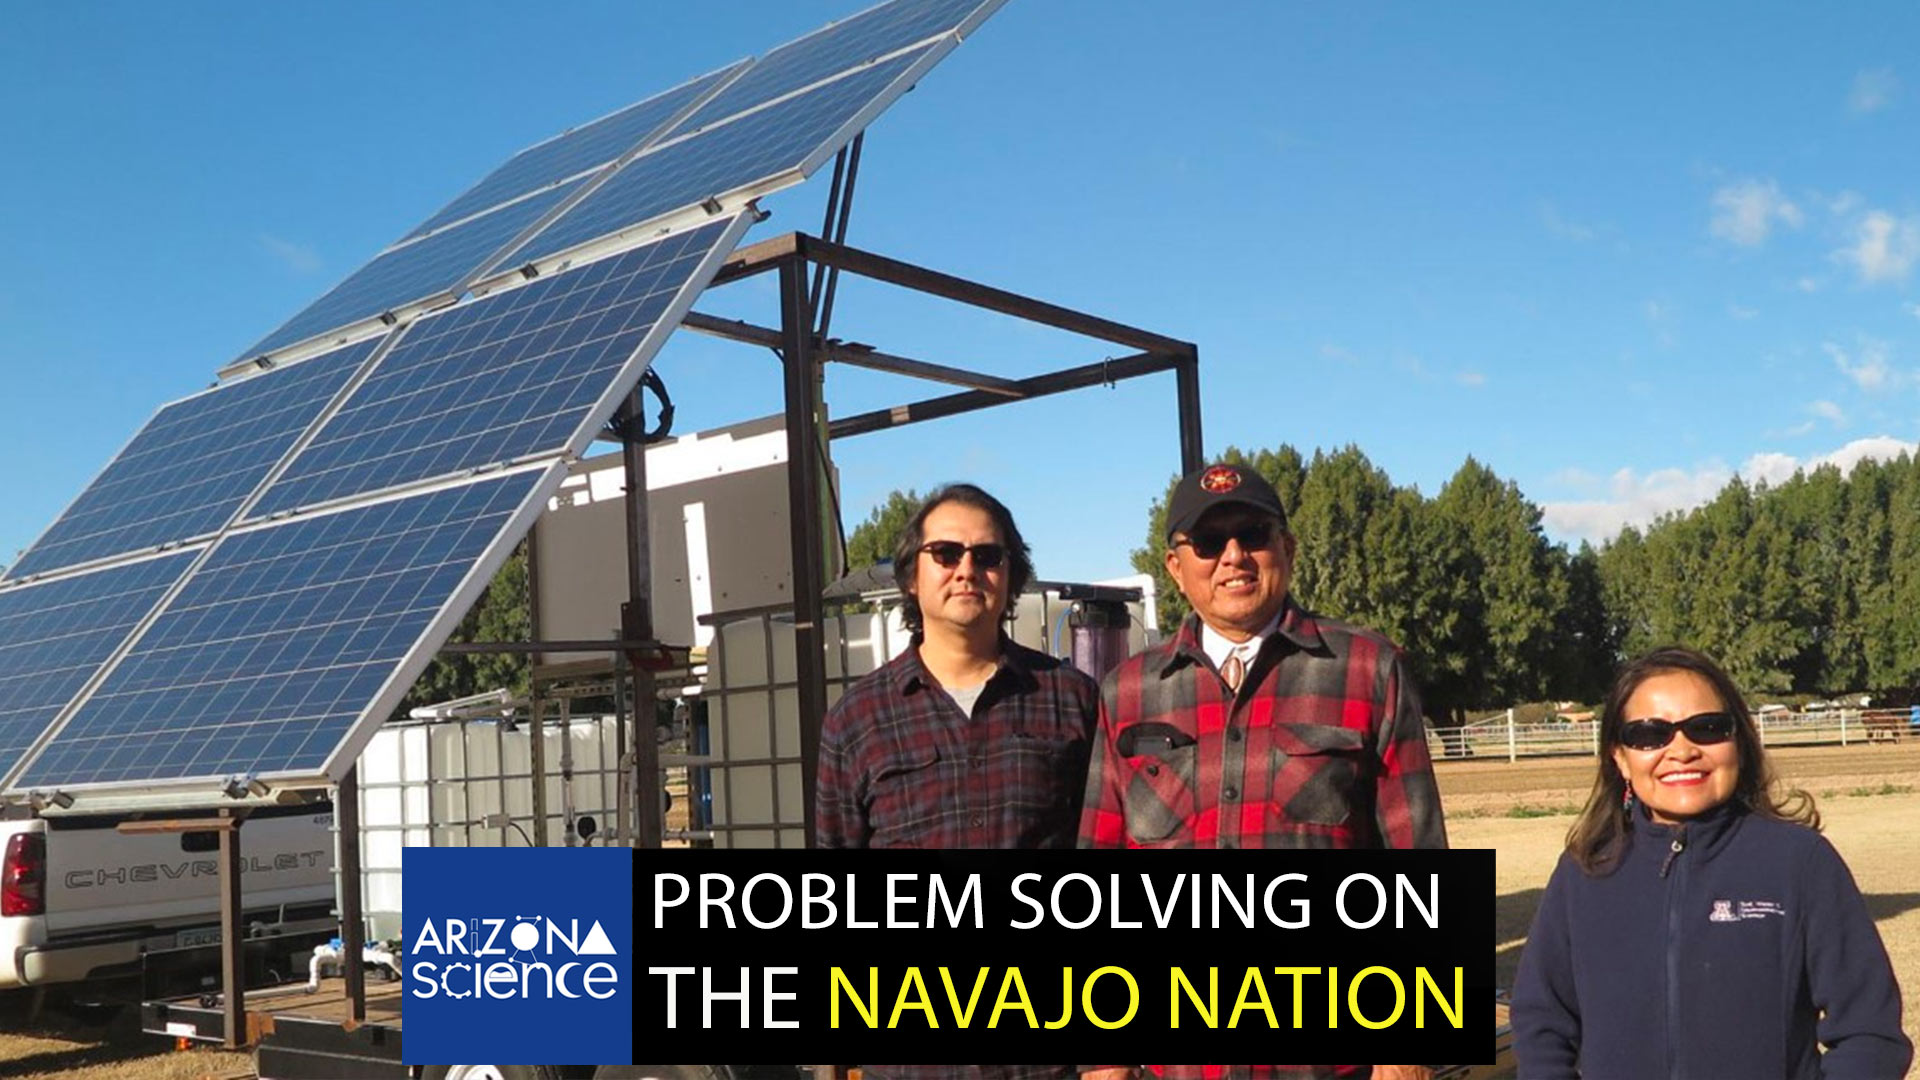 azsci 217 Problem Solving Navajo Nation